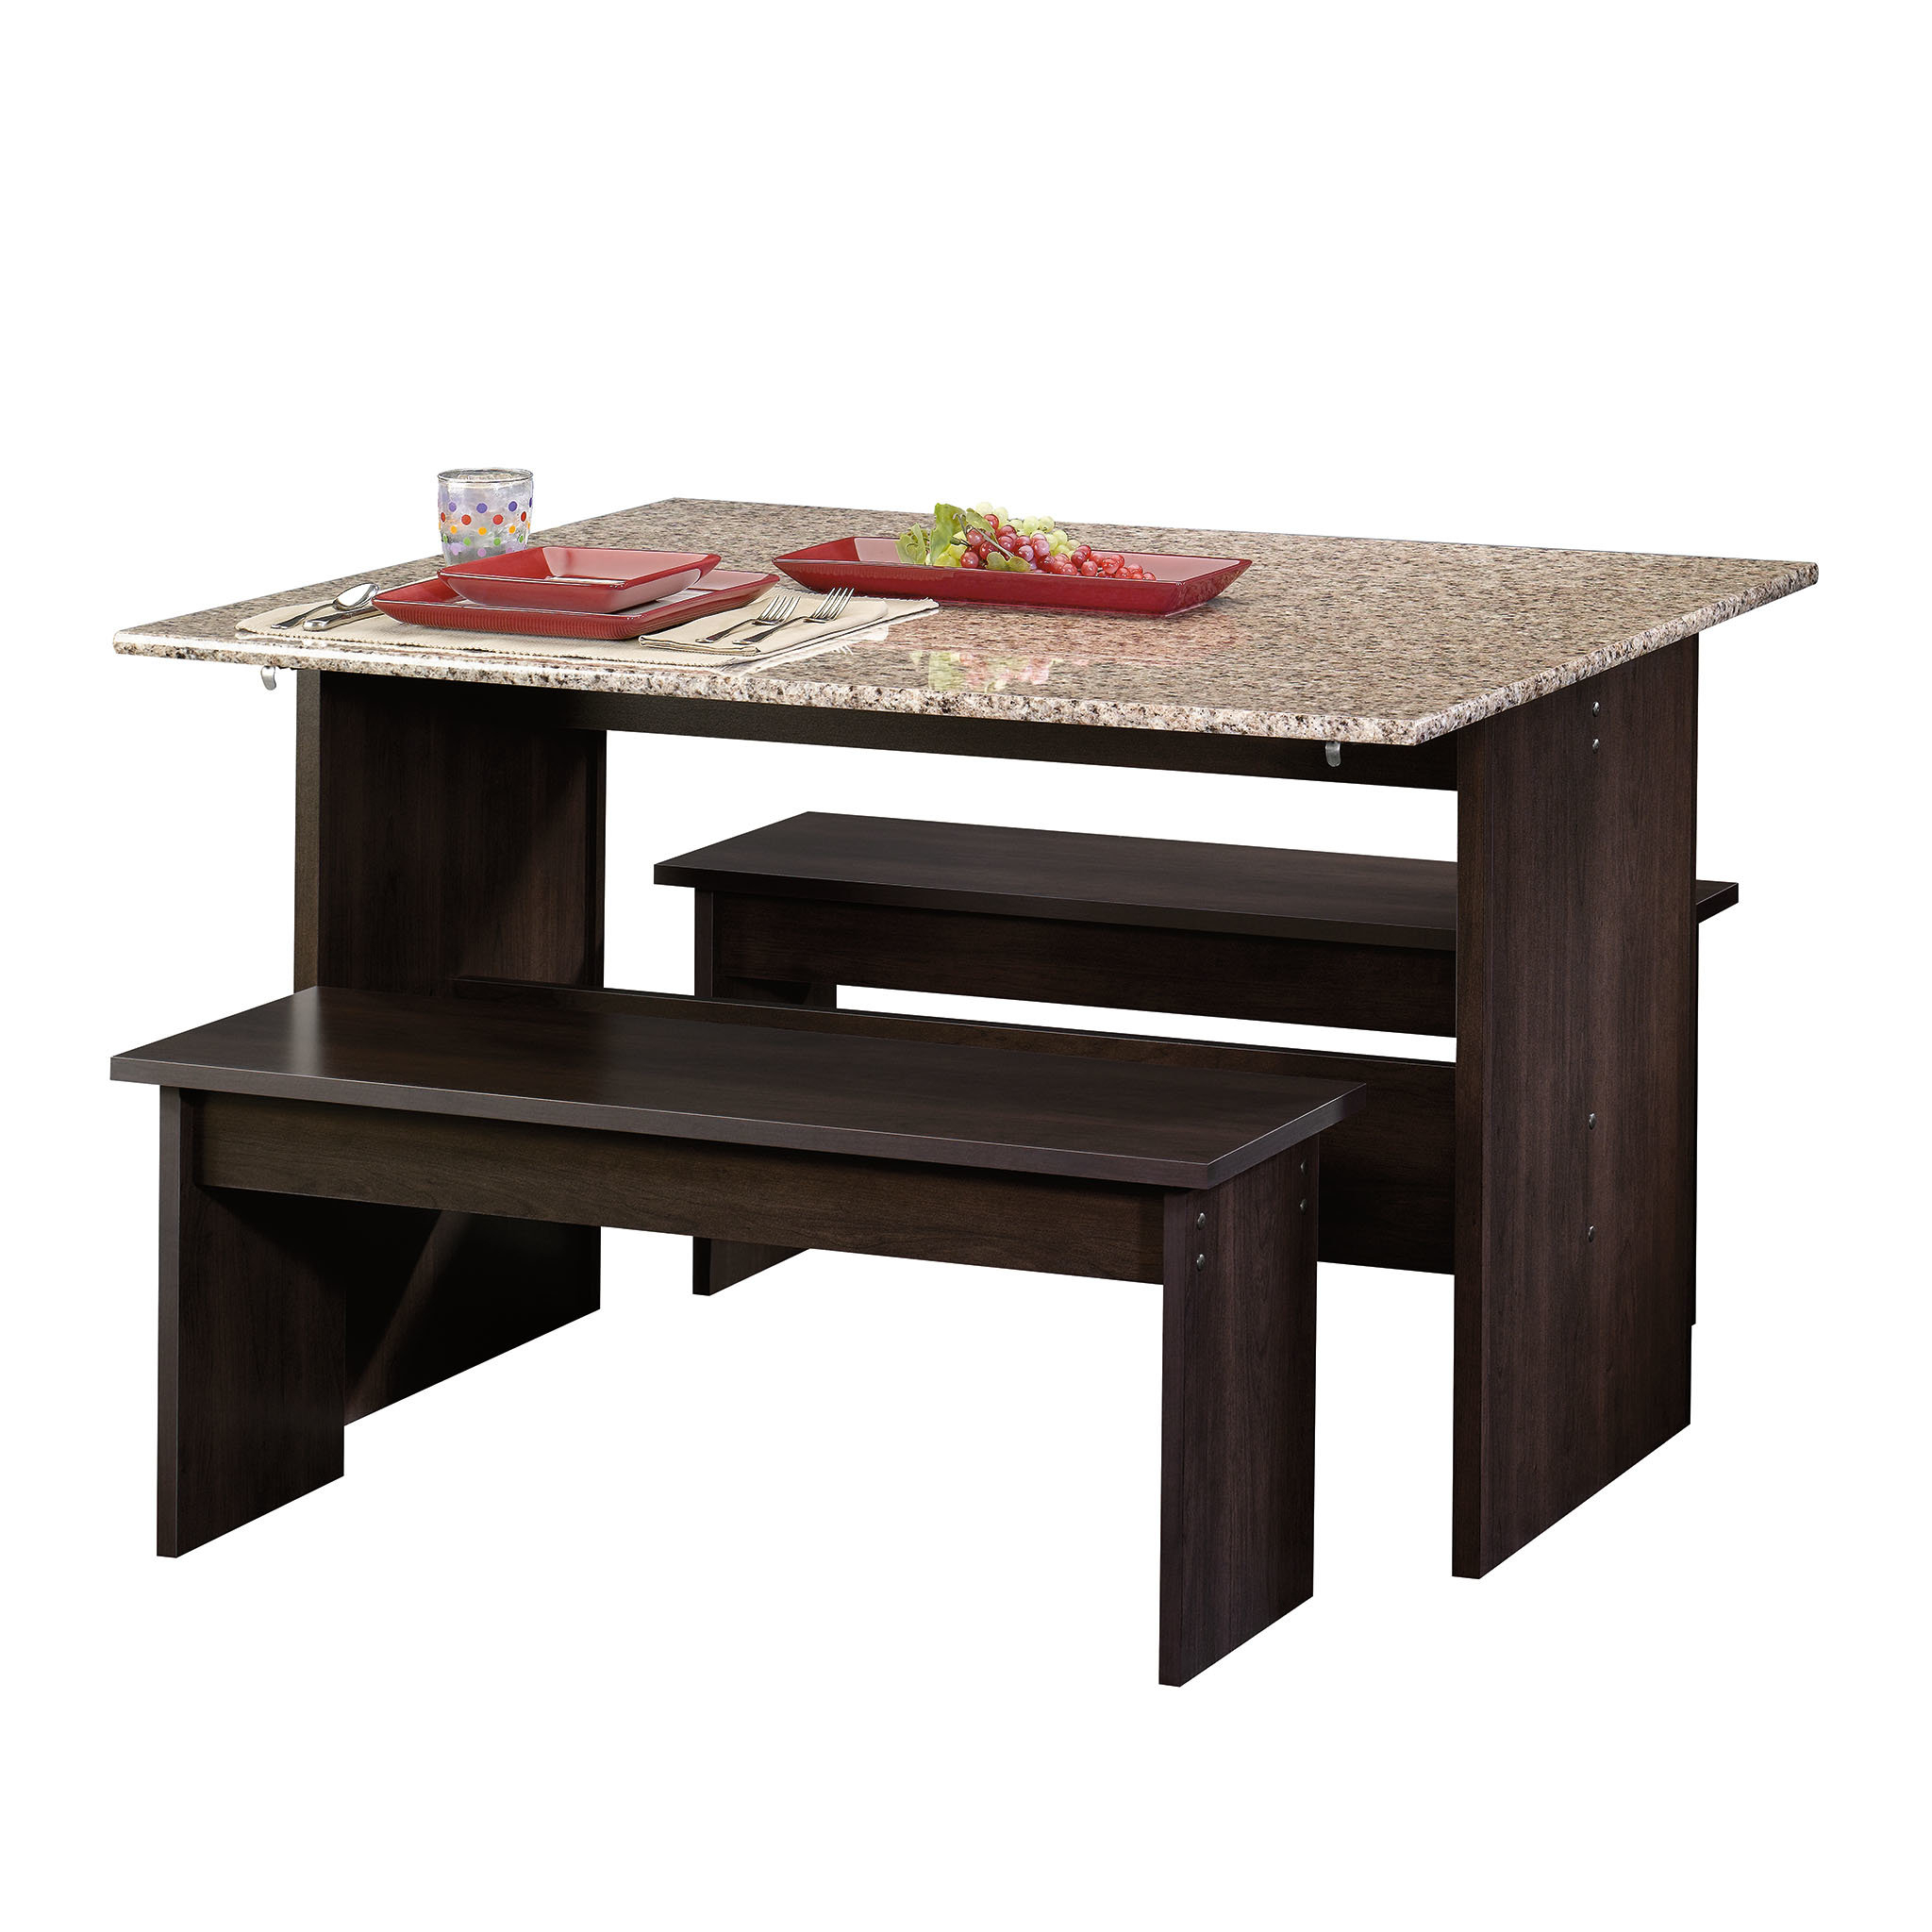 Widely Used Ryker 3 Piece Dining Set Intended For Ryker 3 Piece Dining Sets (View 2 of 20)